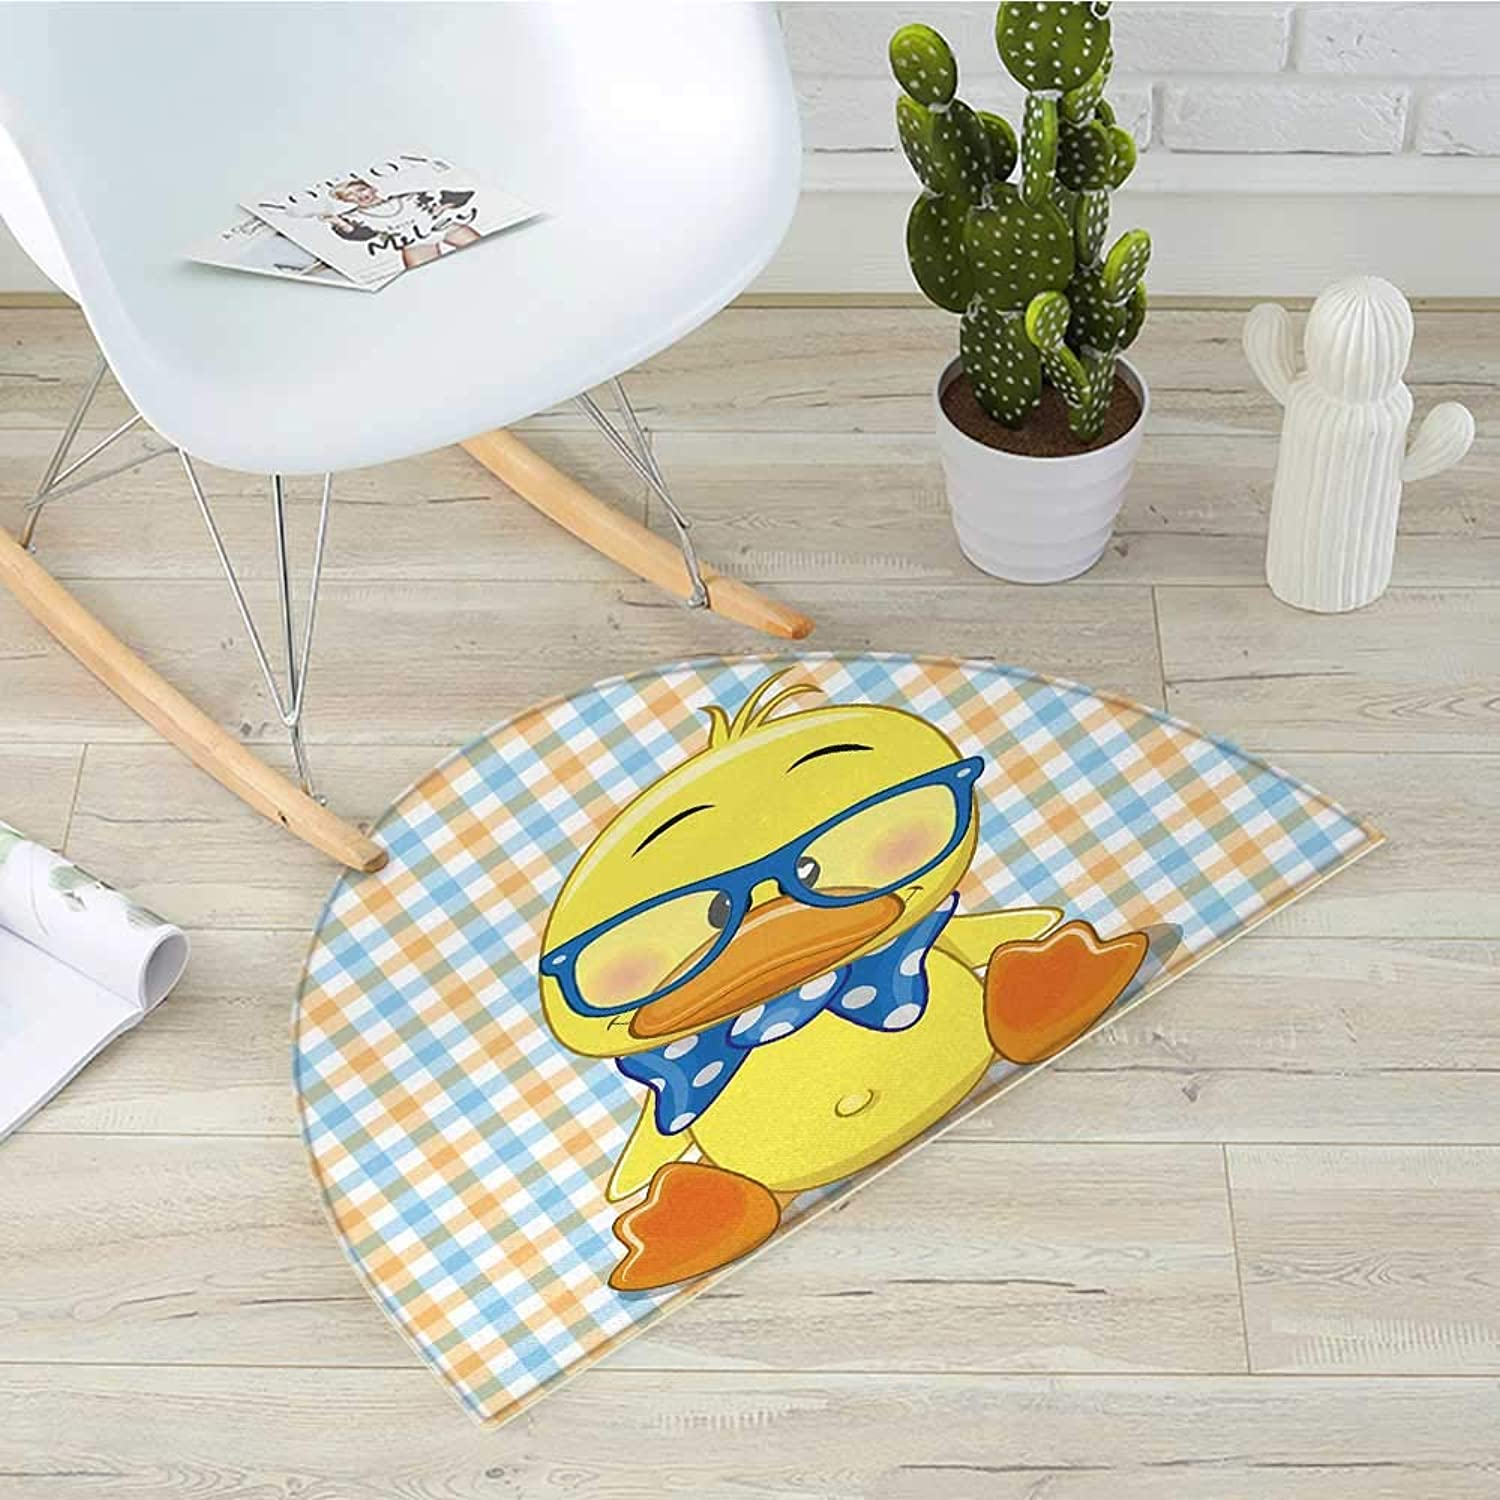 Cartoon Semicircle Doormat Hipster Boho Baby Duck Dotted Bow Cool Free Spirit Smart Geese Artsy Design Halfmoon doormats H 39.3  xD 59  orange Yellow bluee